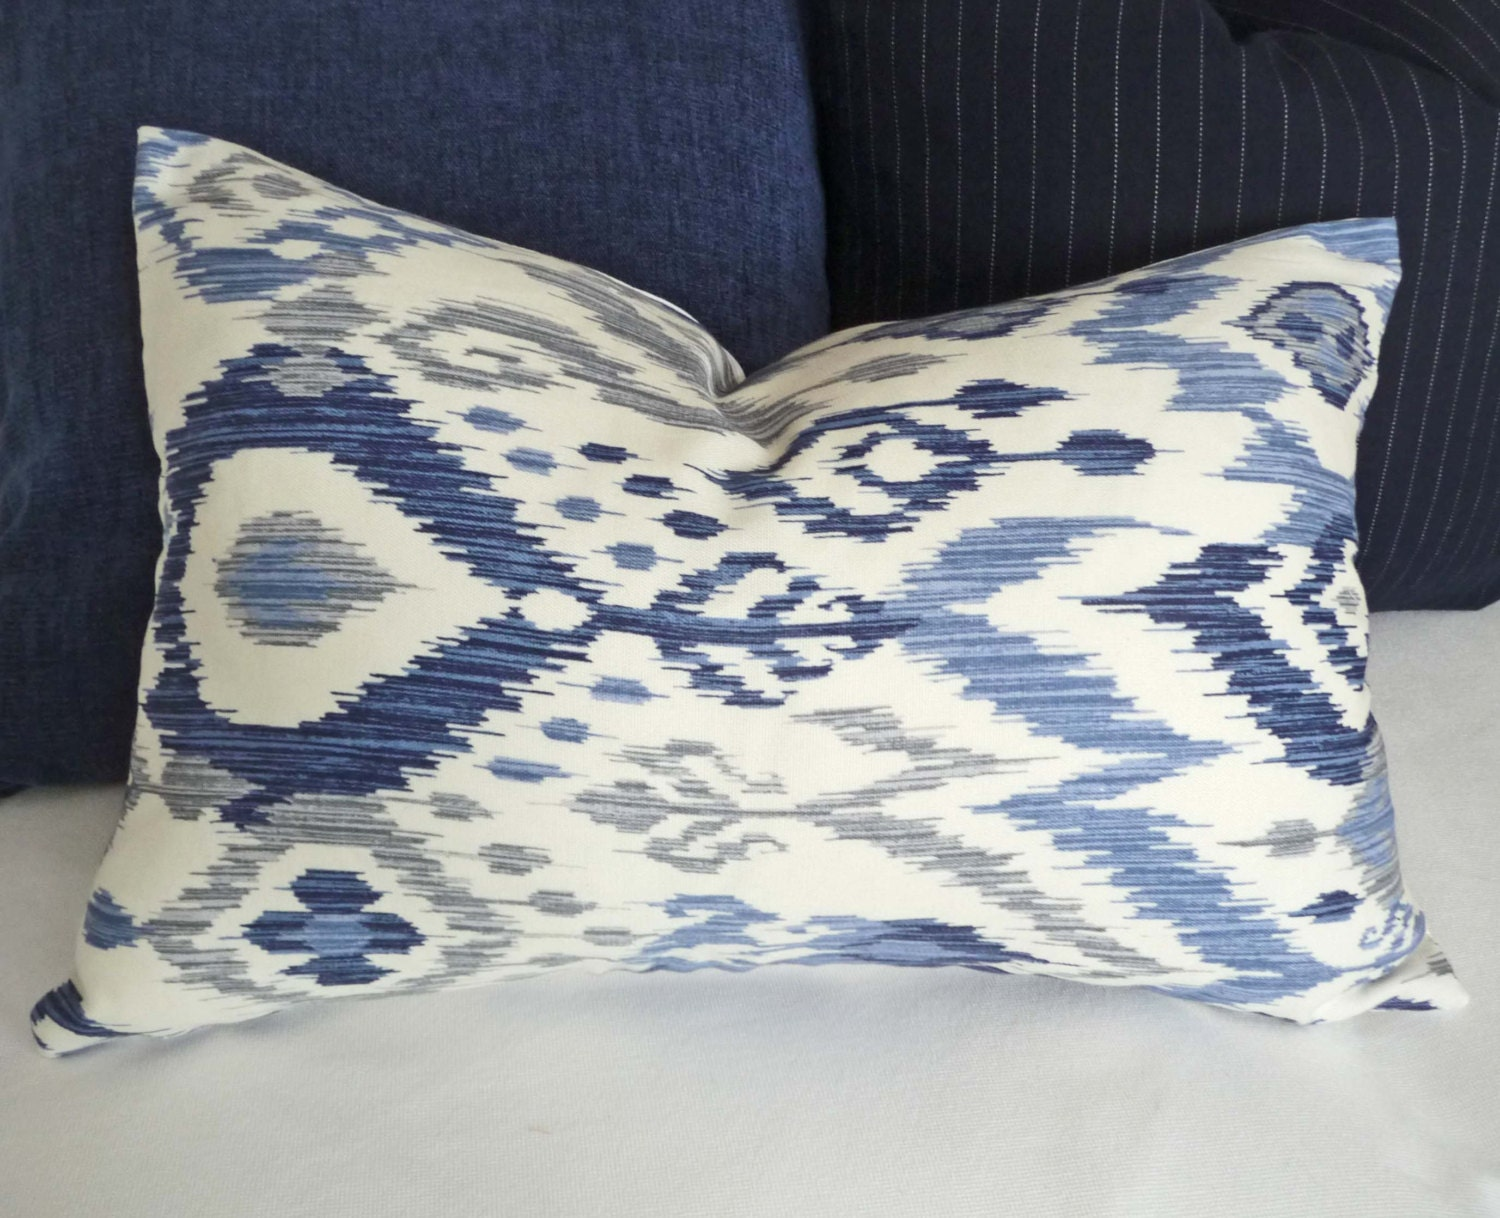 Blue Ikat Lumbar Pillows Blue Decorative Pillows Blue White